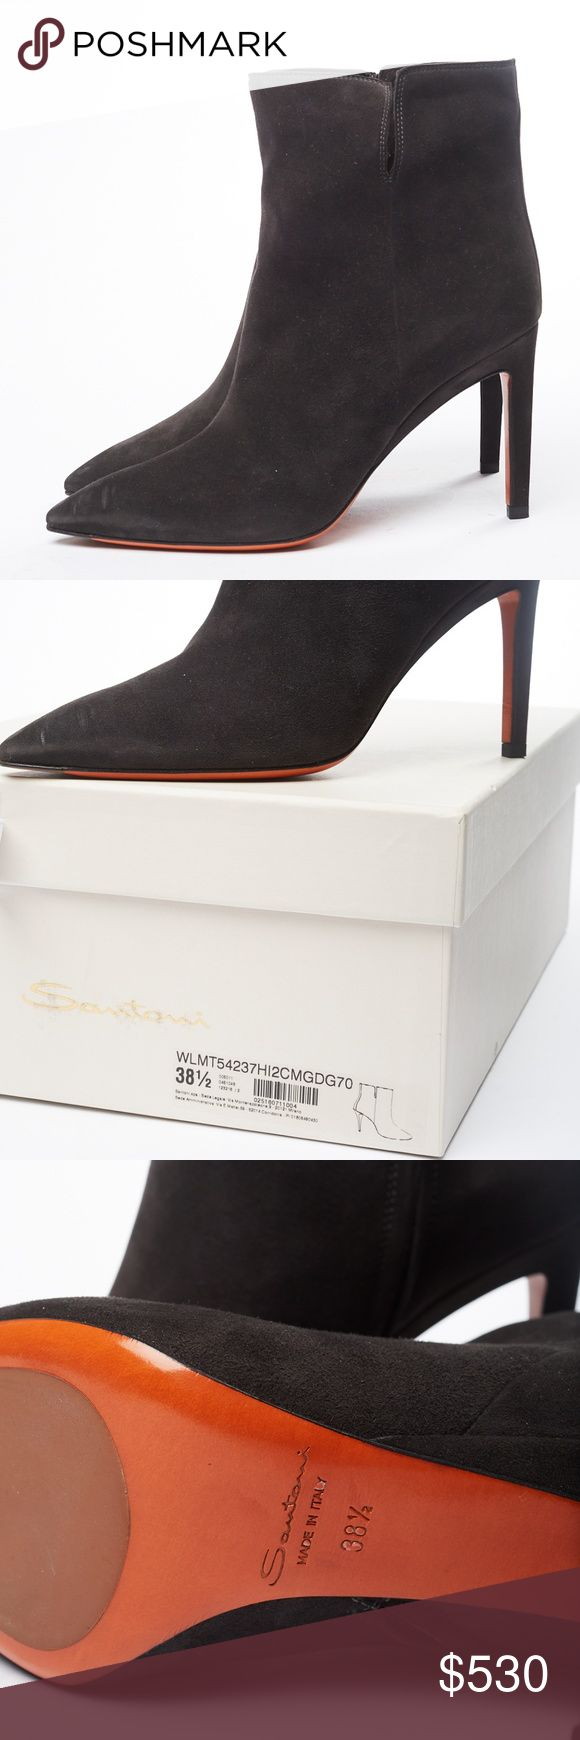 🆕️ NWT Santoni Black Suede High Heel Boot Absolutely gorgeous new with tags…